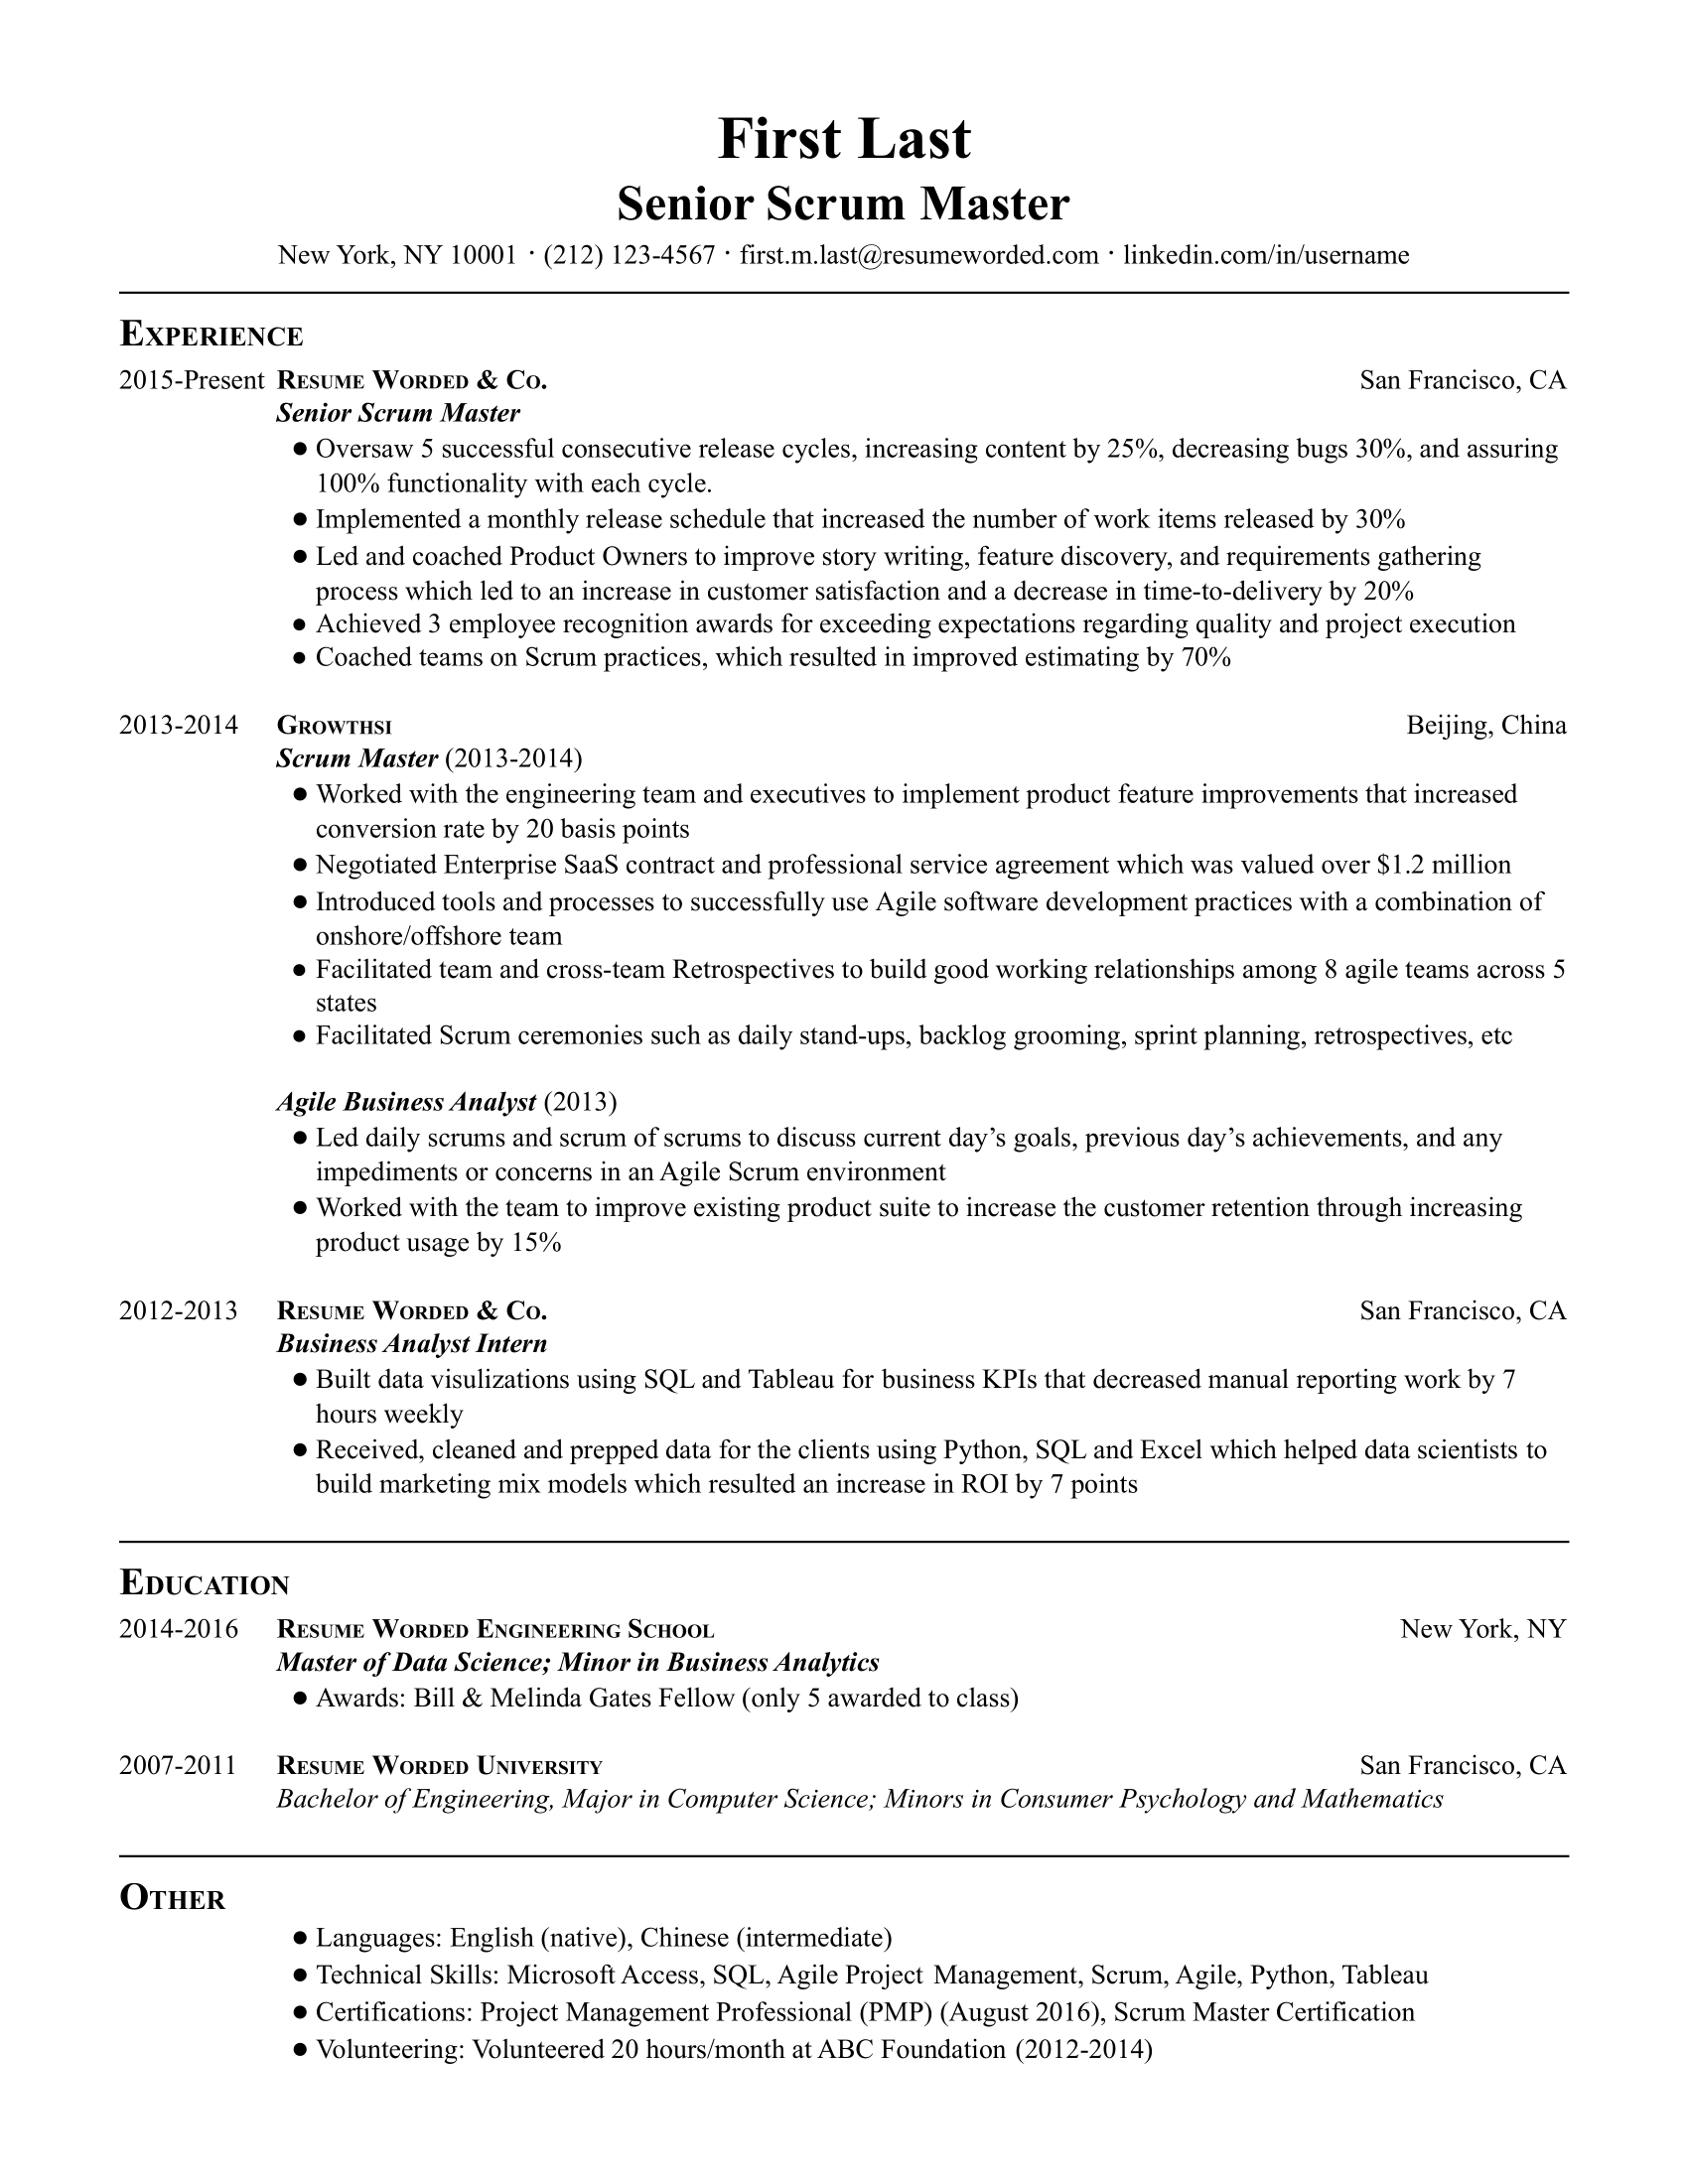 A senior scrum master resume with examples of longevity and promotion, bullet points with measurable achievements, and education to supplement the experience.